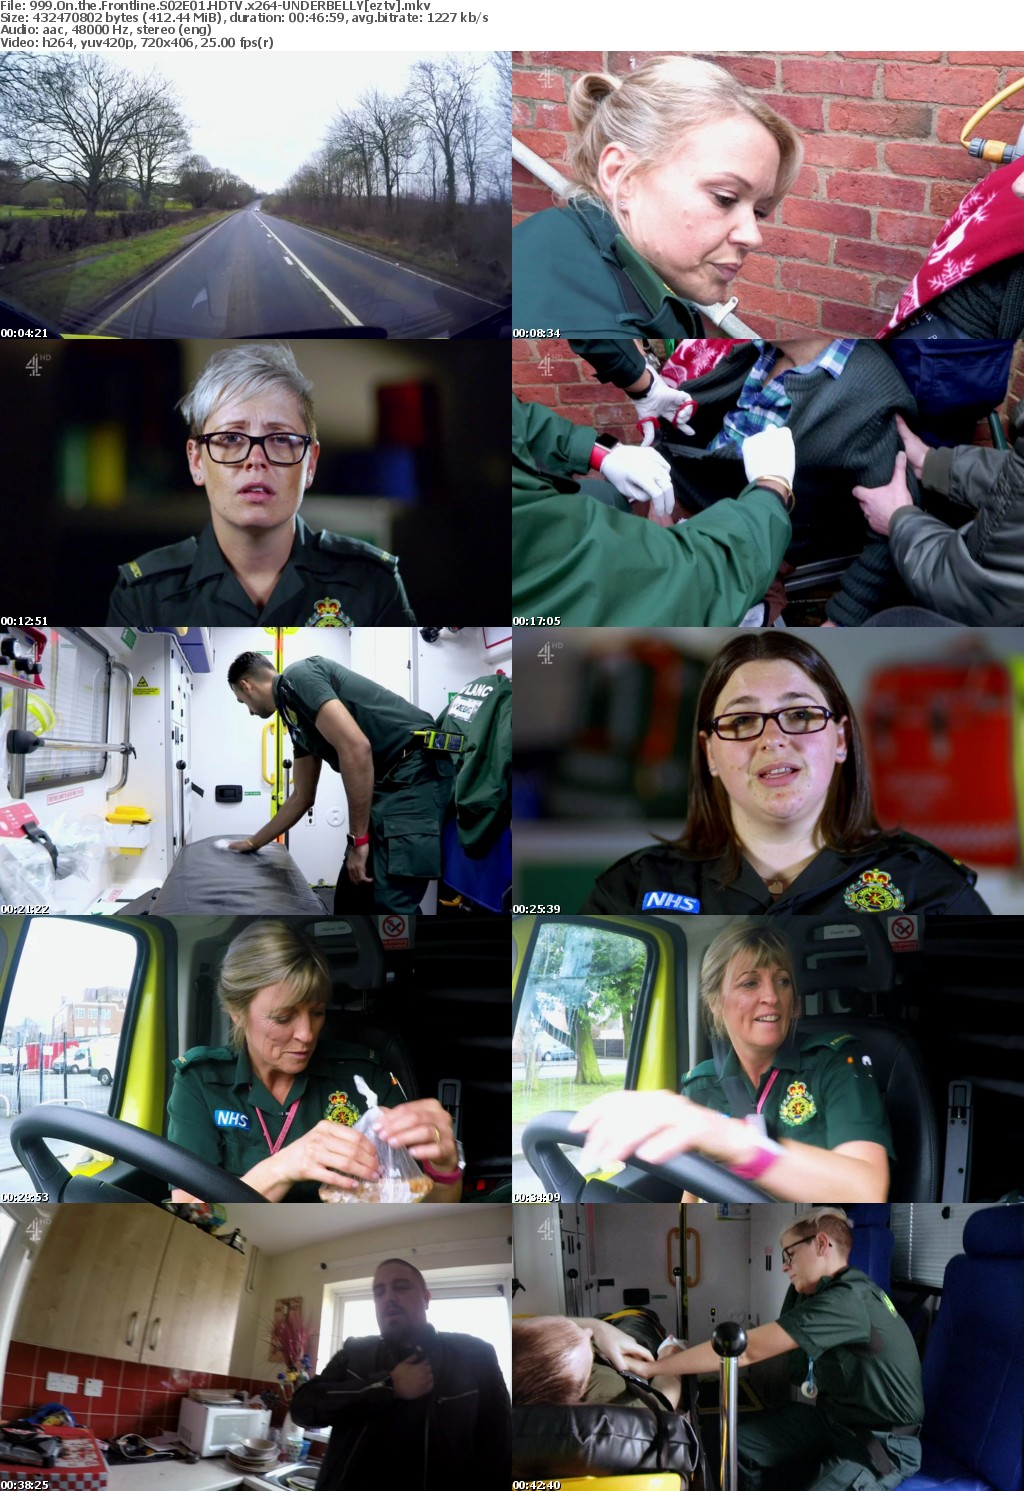 999 On the Frontline S02E01 HDTV x264-UNDERBELLY